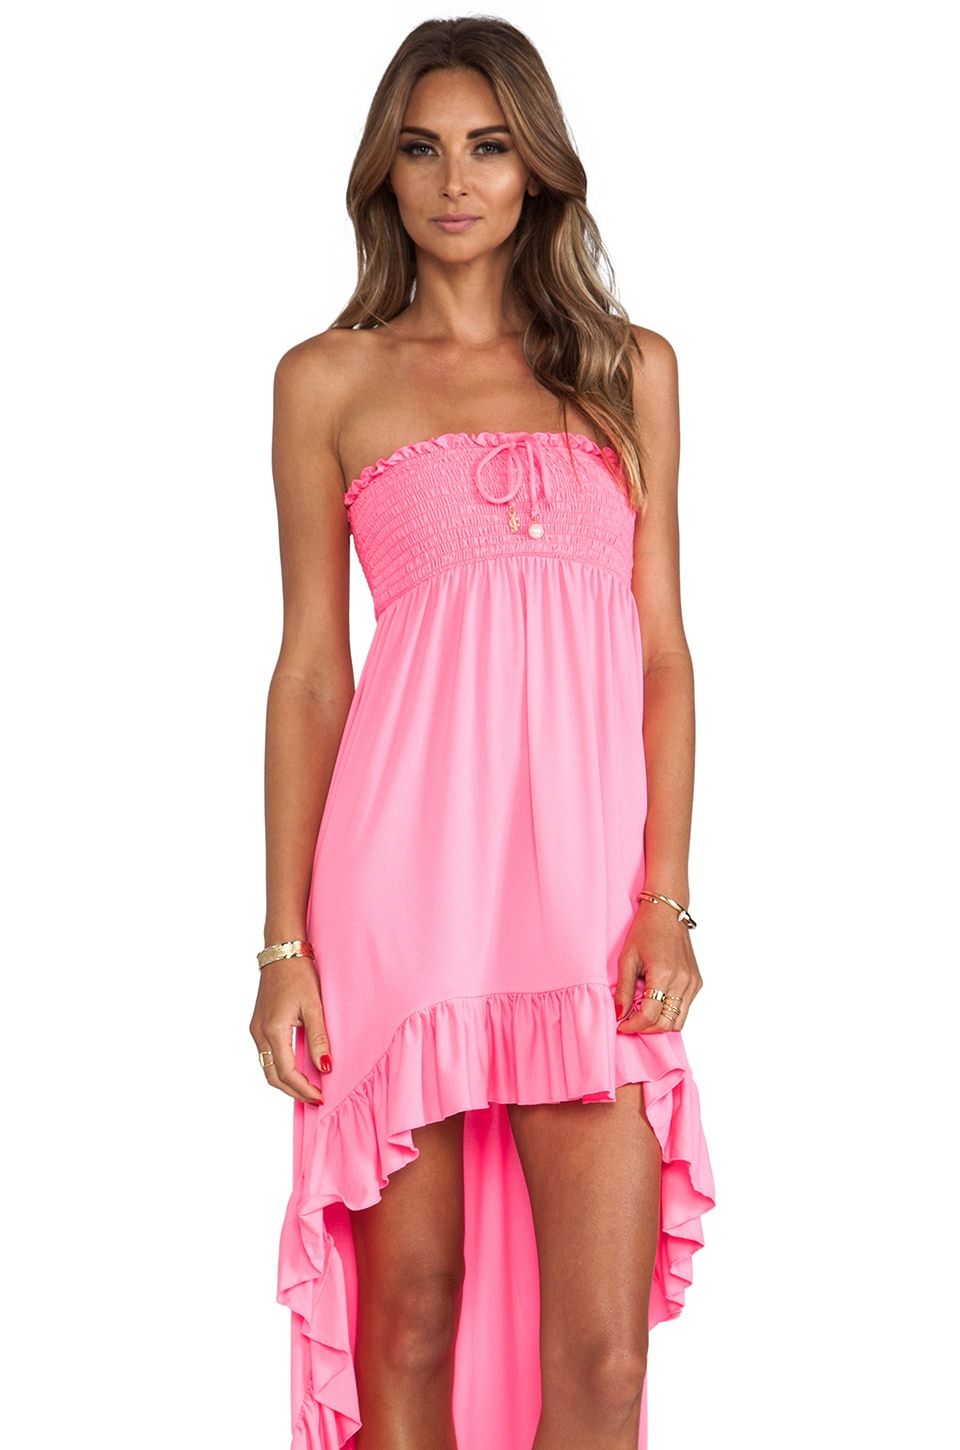 Juicy Couture Bow Chic High-Low Cover Up Dress in Shell Shock